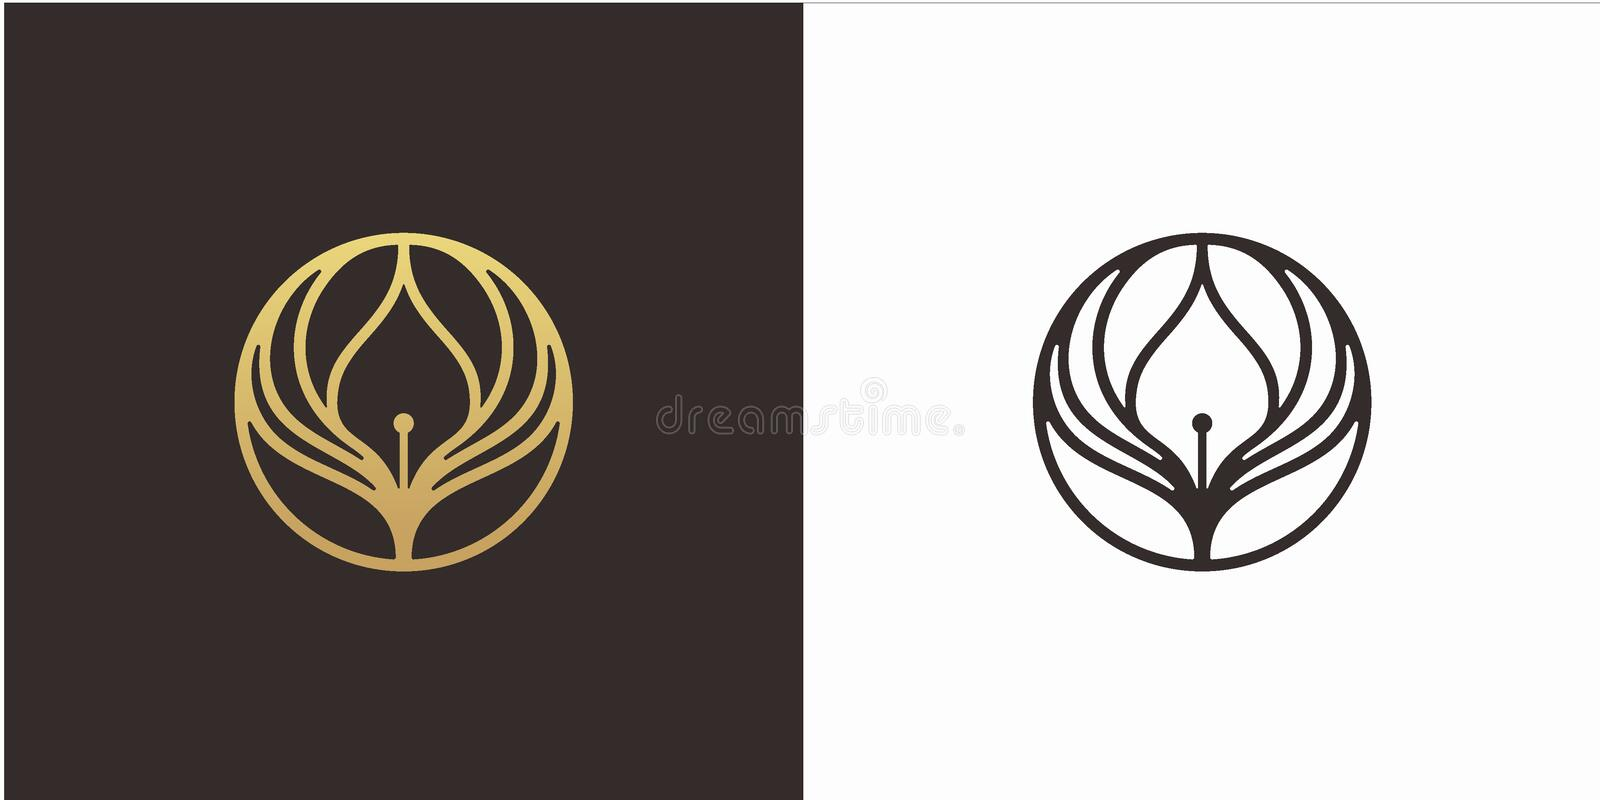 Learn Education logo design concept, wings logo, with Luxury style logo template vector illustration